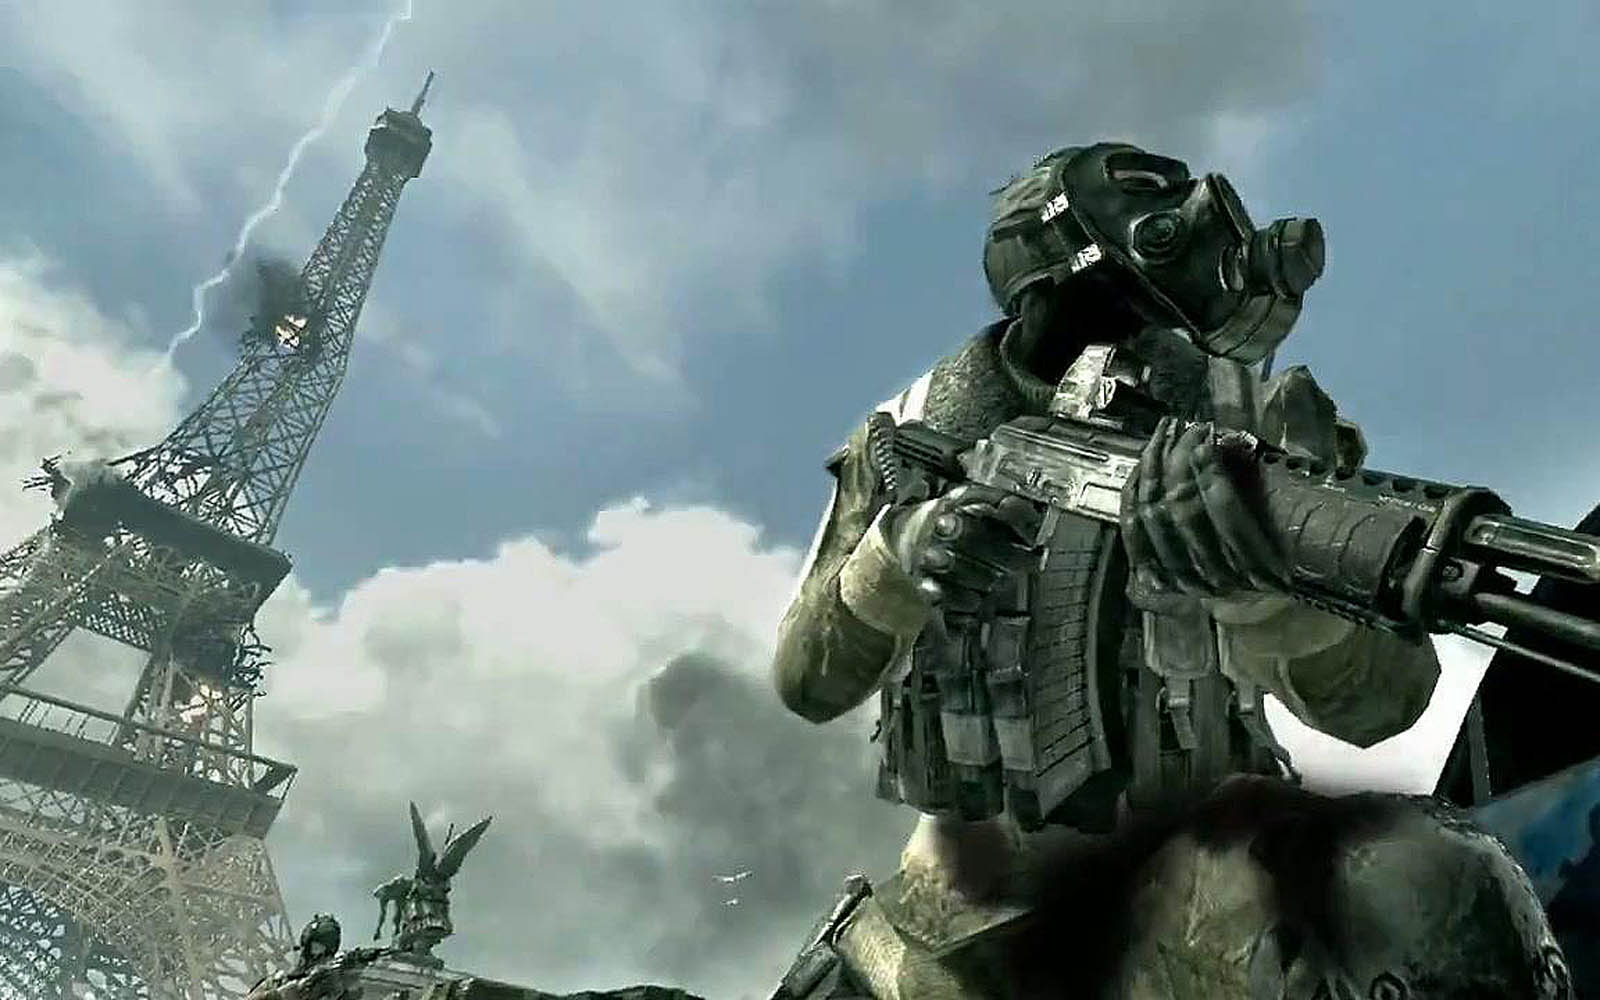 Call Of Duty Modern Warfare 3 Wallpapers | Desktop Wallpapers Online